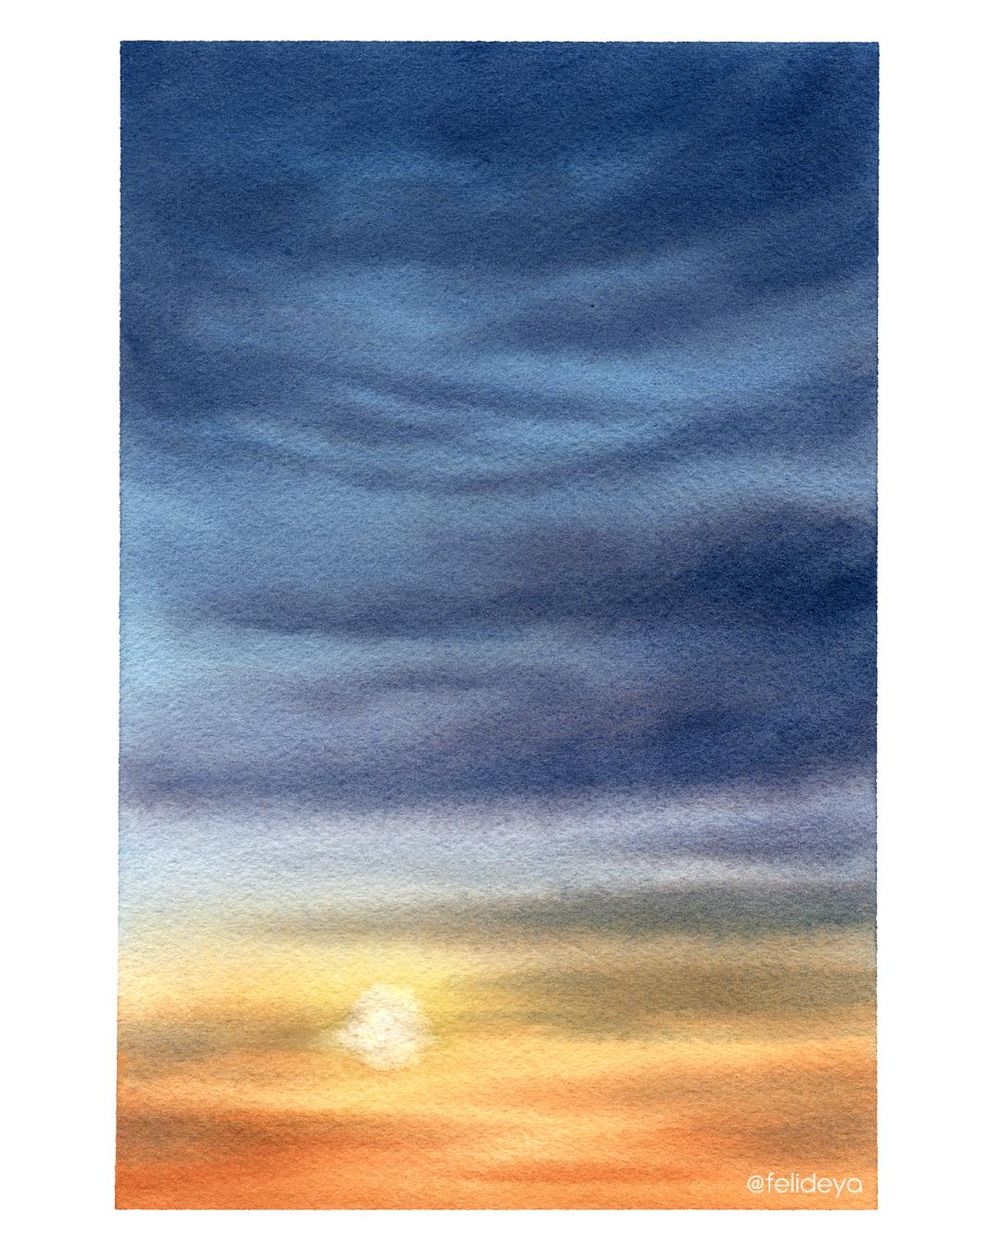 Sunset Sky - image 1 - student project